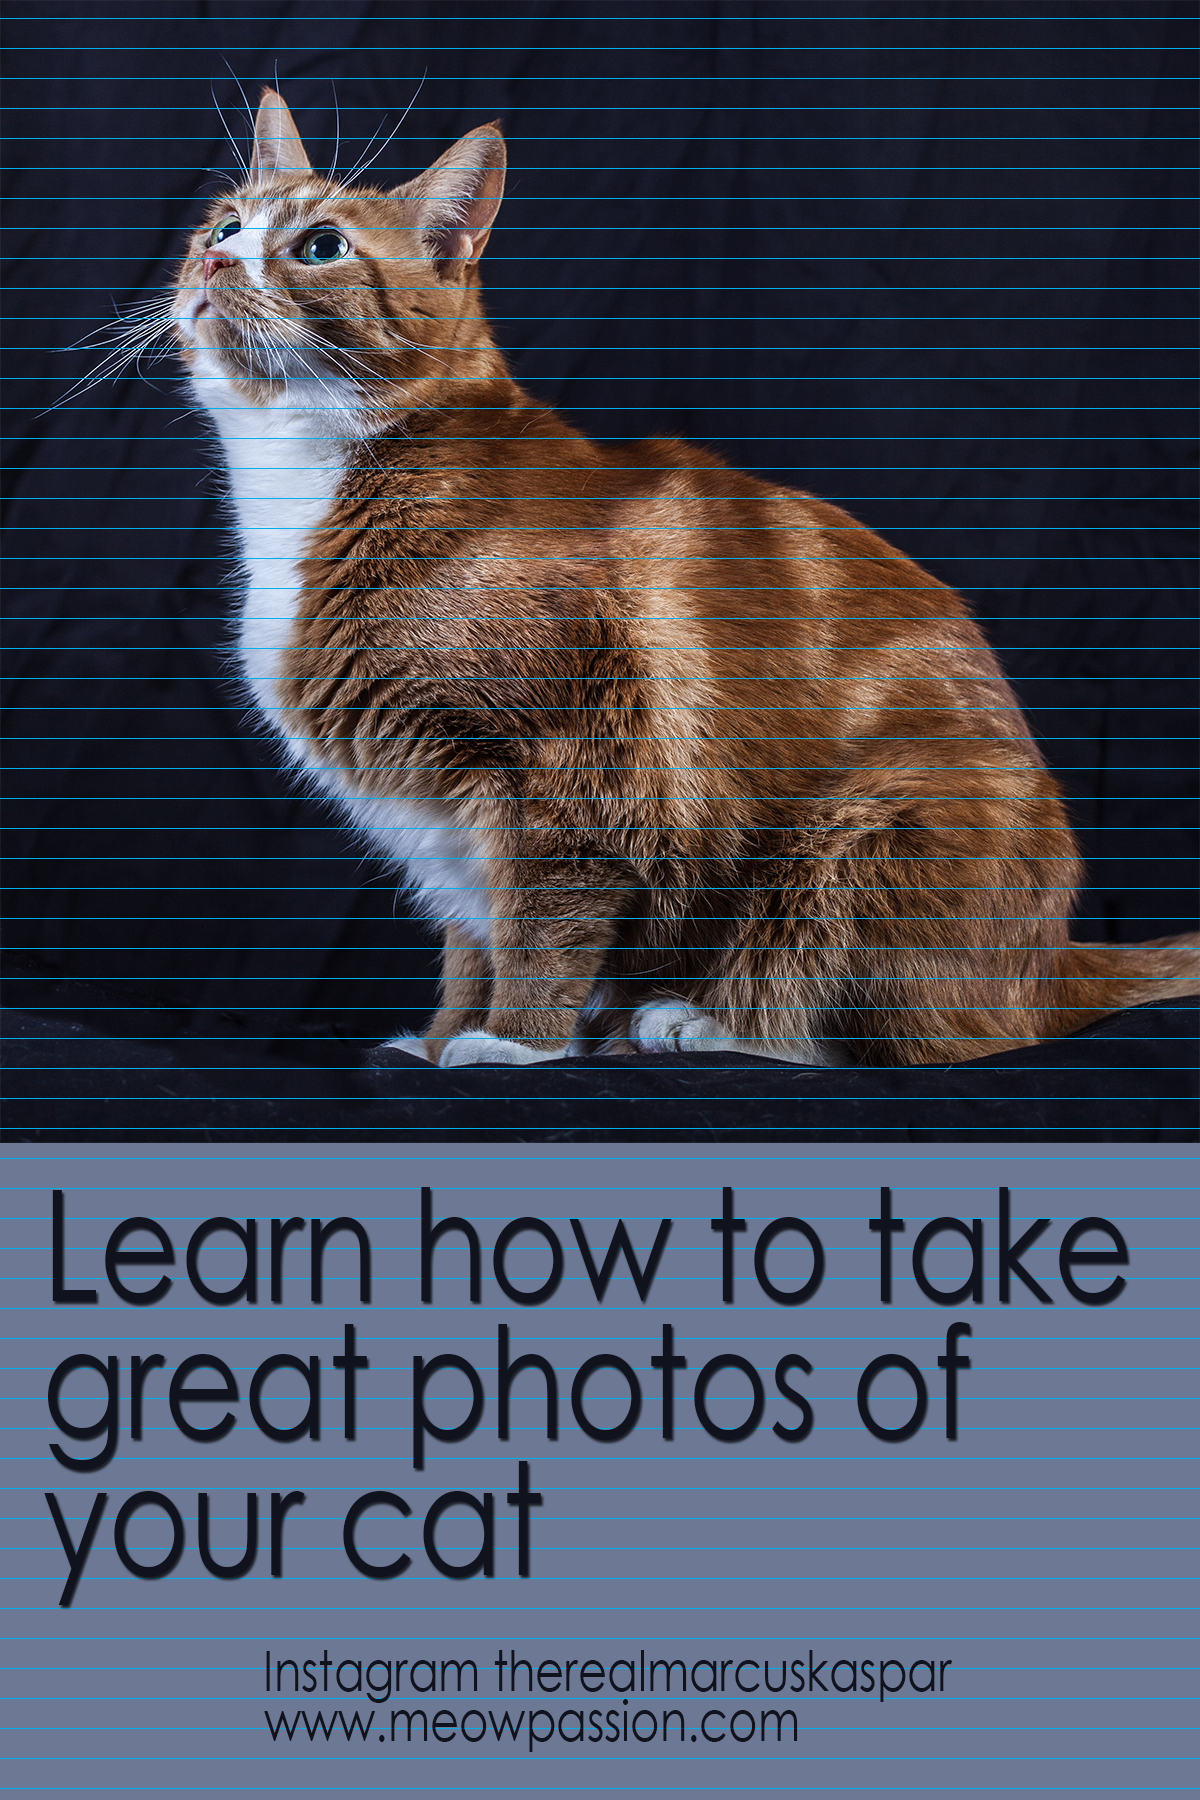 Cats Complete Guide To Owning And Caring For Your Feline Friend Meowpassion Cat Training Training A Kitten Cats